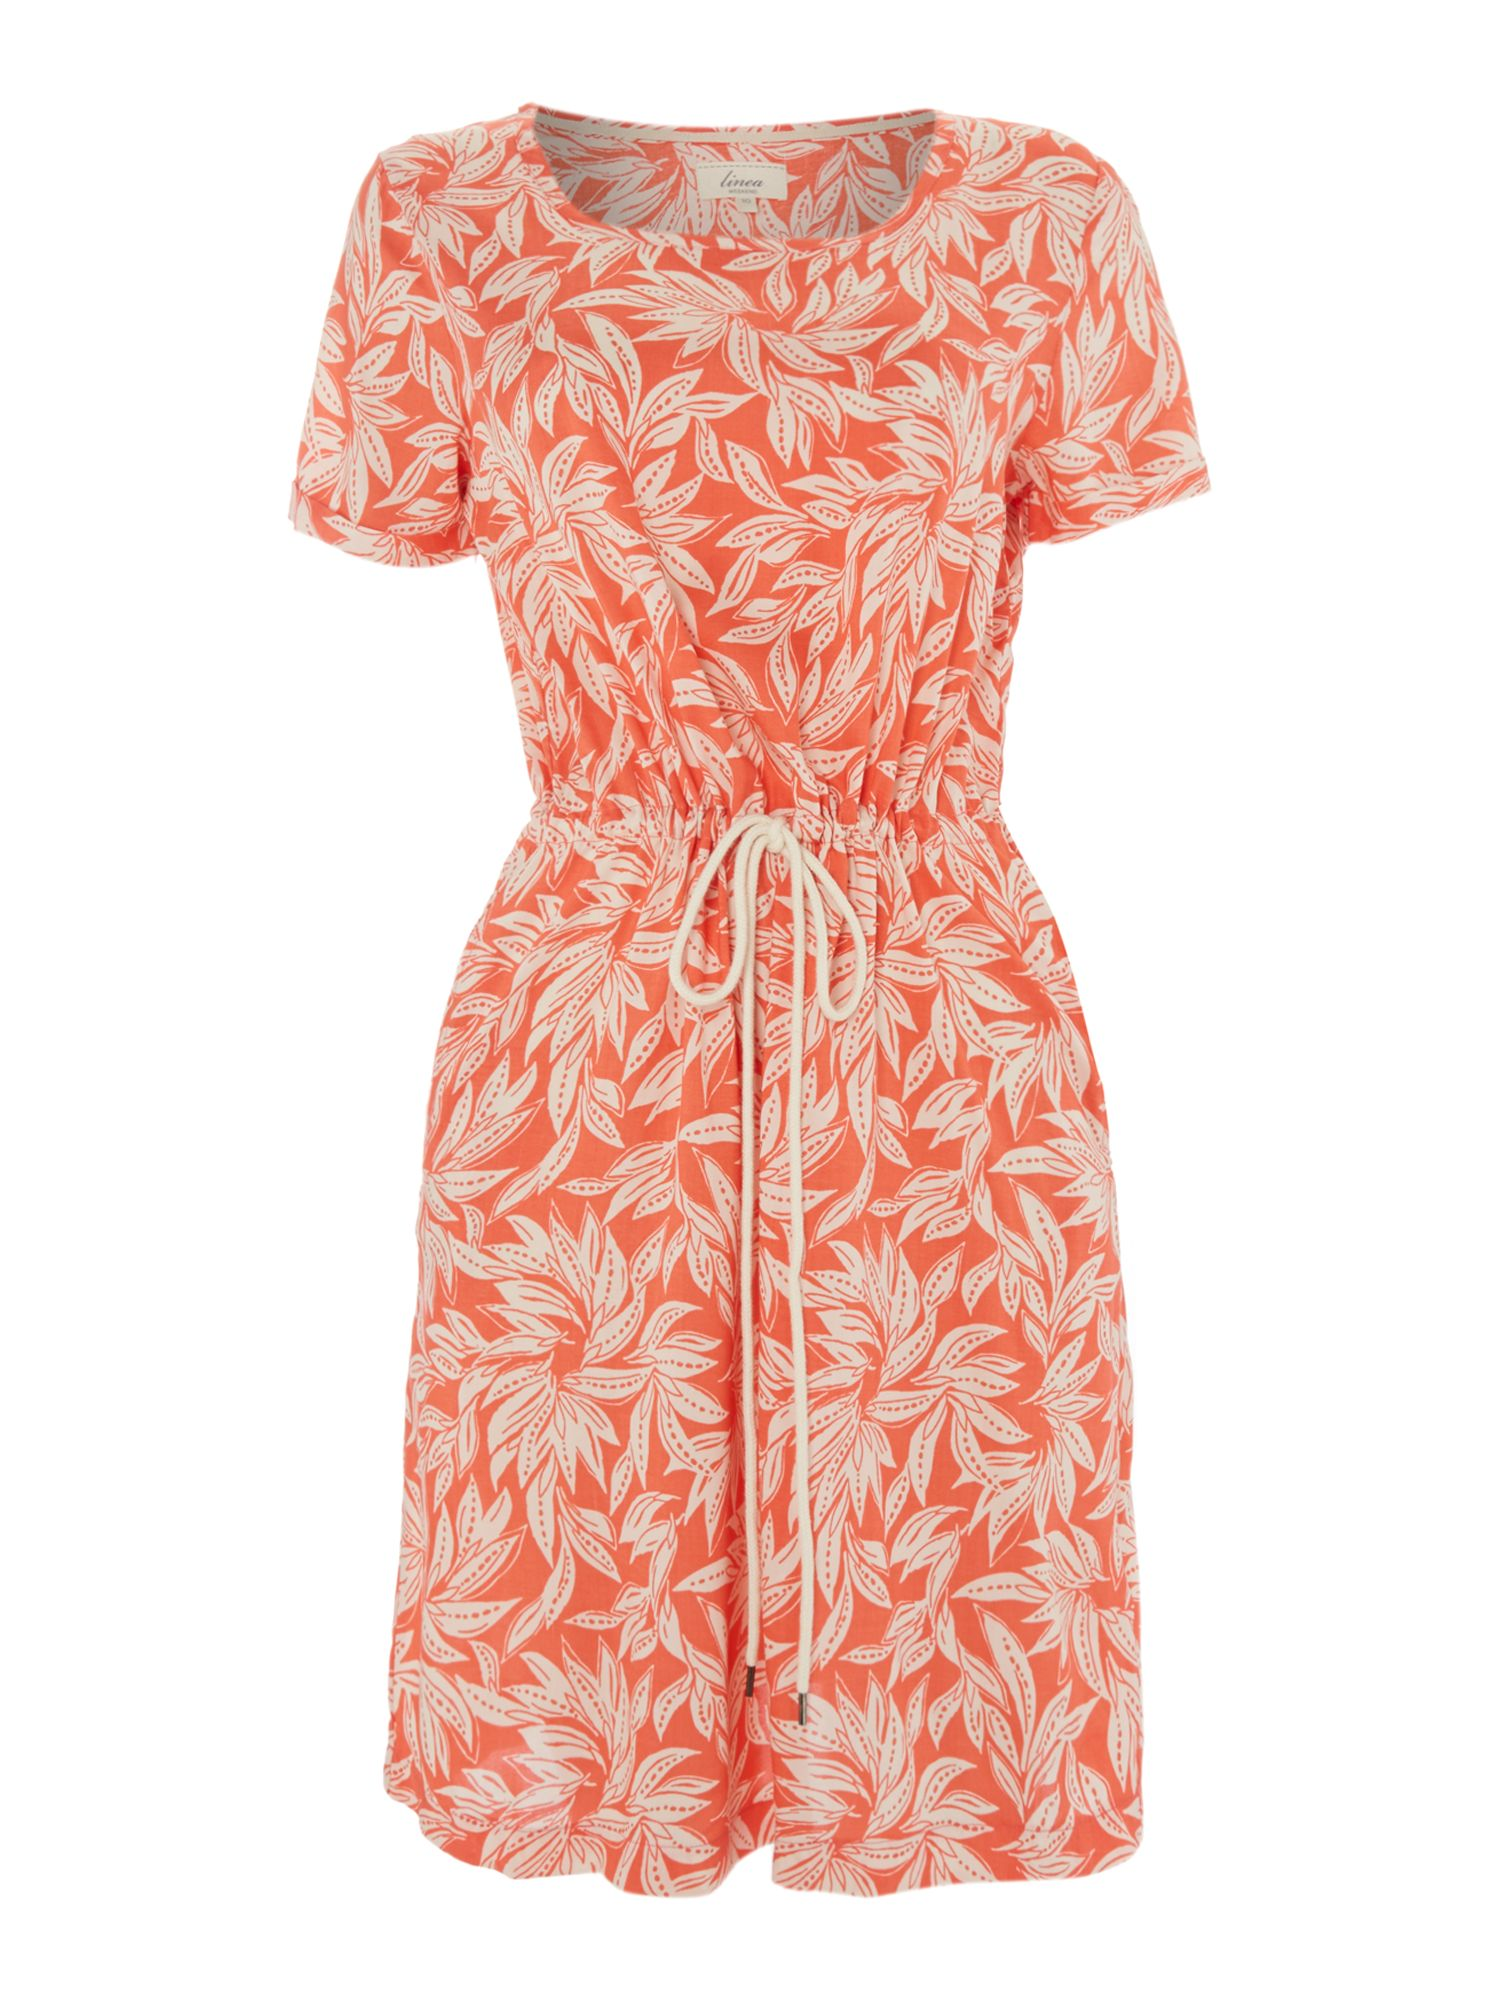 Floral print woven drawstring dress